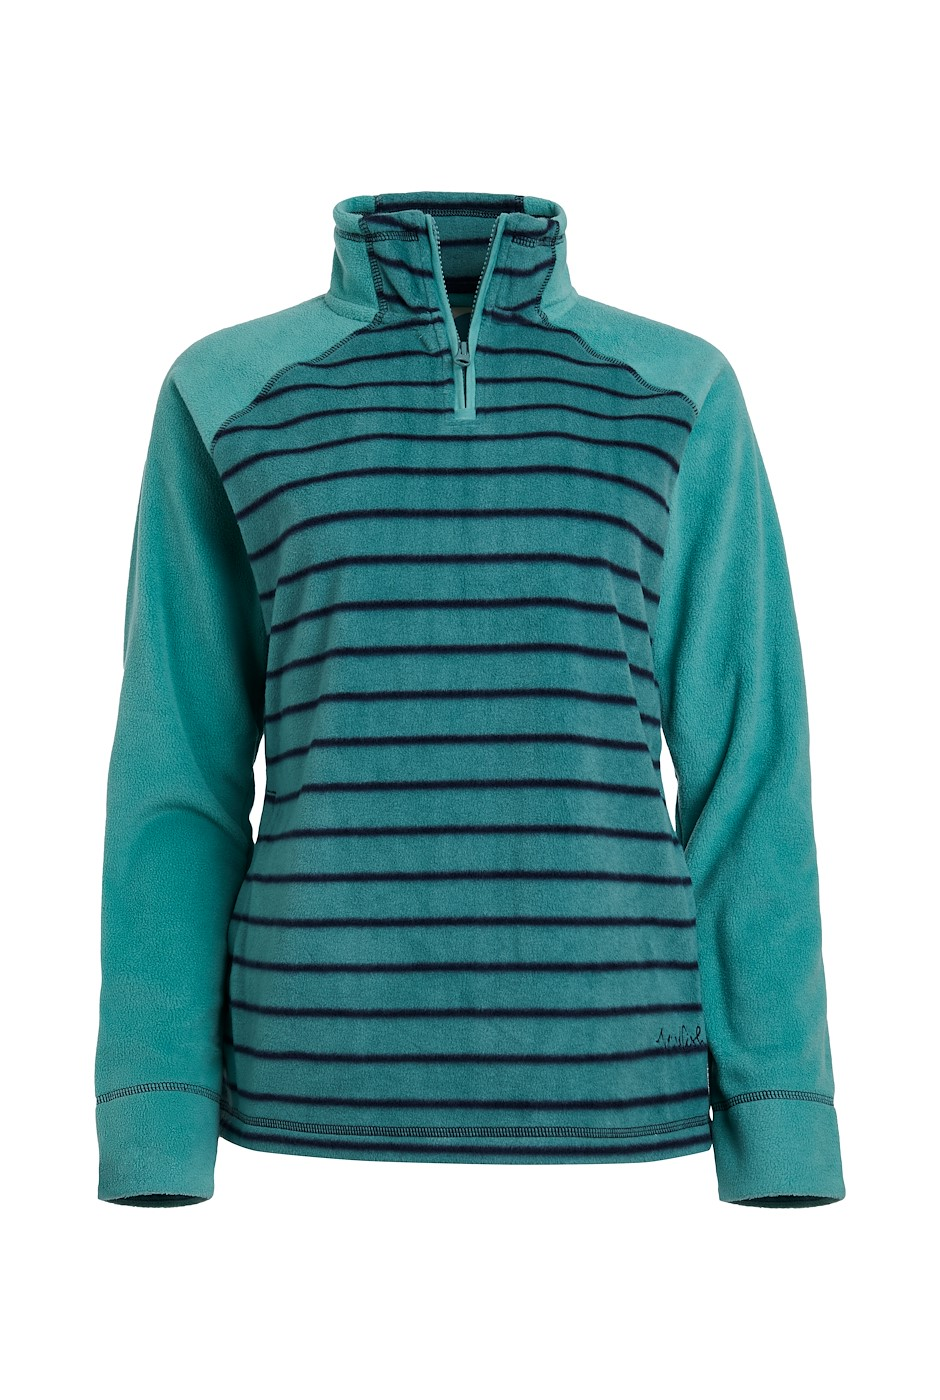 Litchi Recycled Fleece Washed Teal